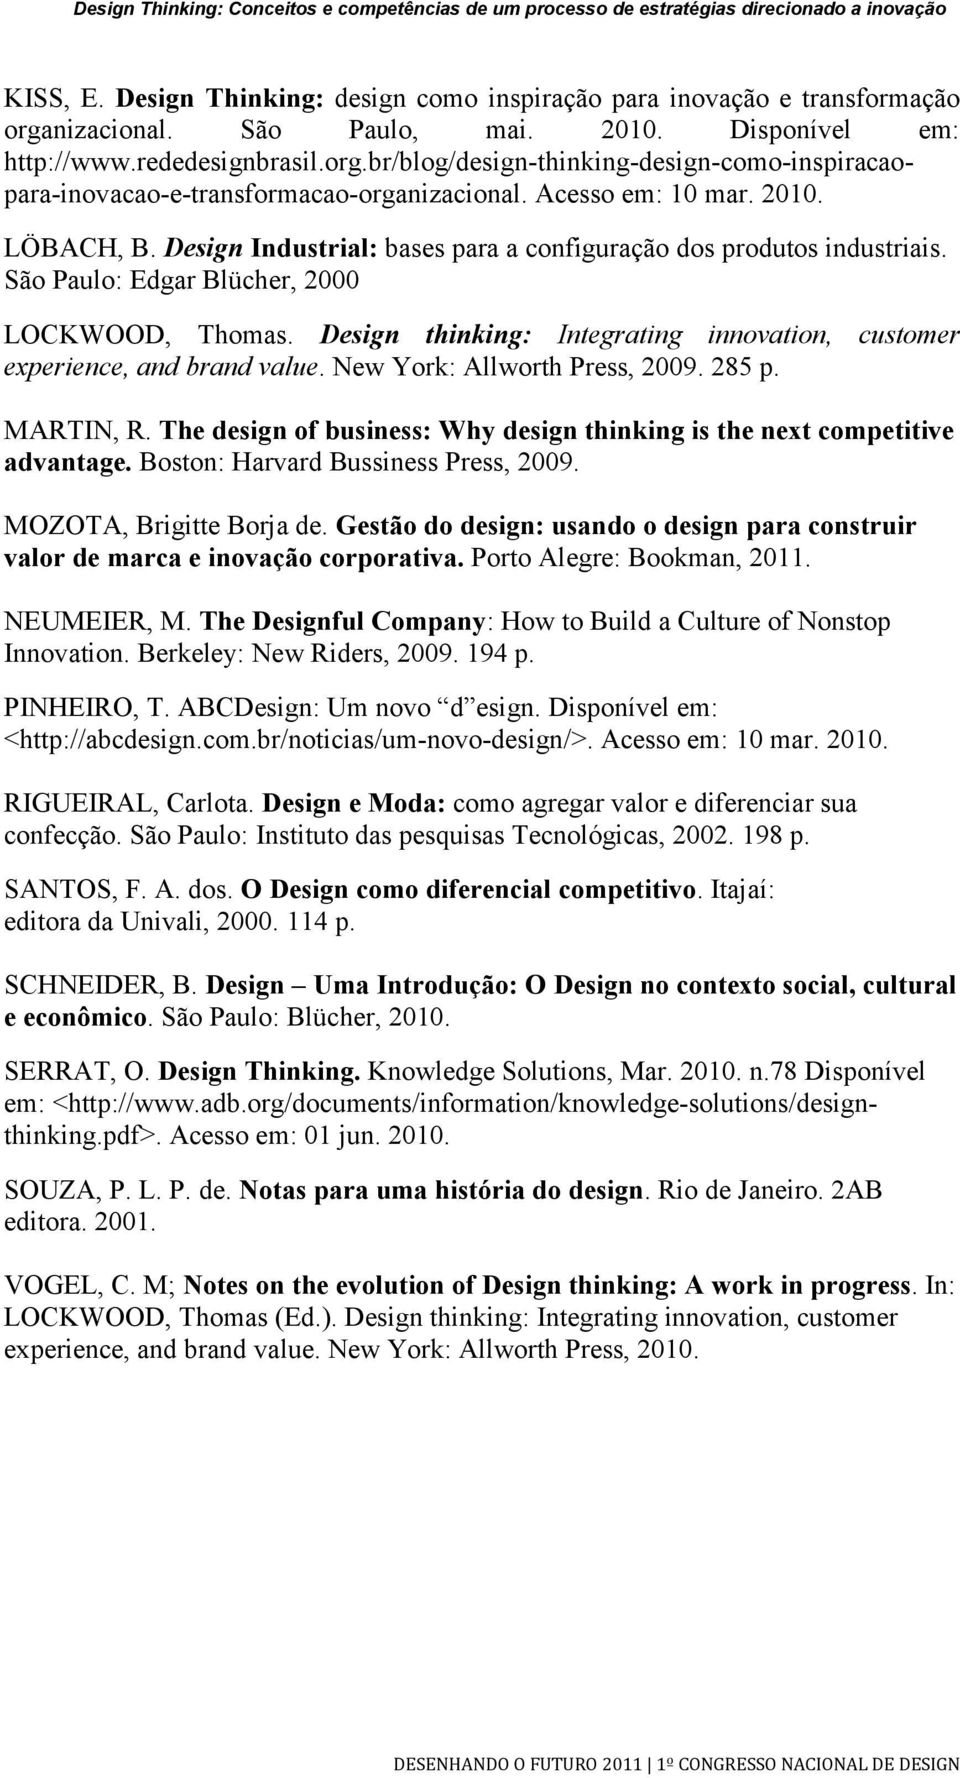 Design thinking: Integrating innovation, customer experience, and brand value. New York: Allworth Press, 2009. 285 p. MARTIN, R.